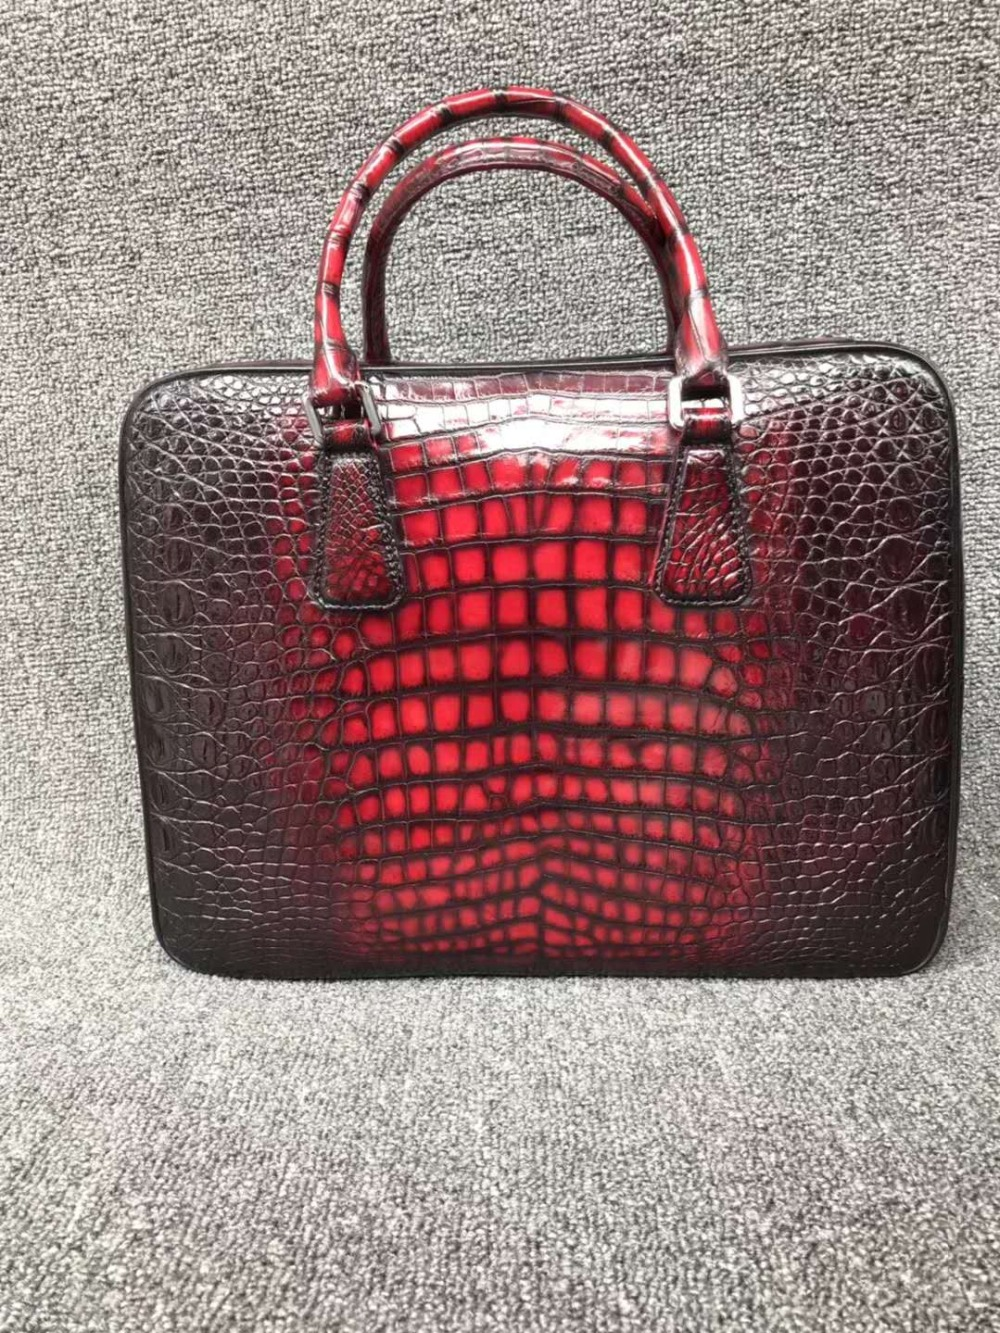 100% Genuine Real Crocodile Leather Belly Skin Men Business Bag Briefcase Zipper With Code Locker Closure 2 Colors Black+red